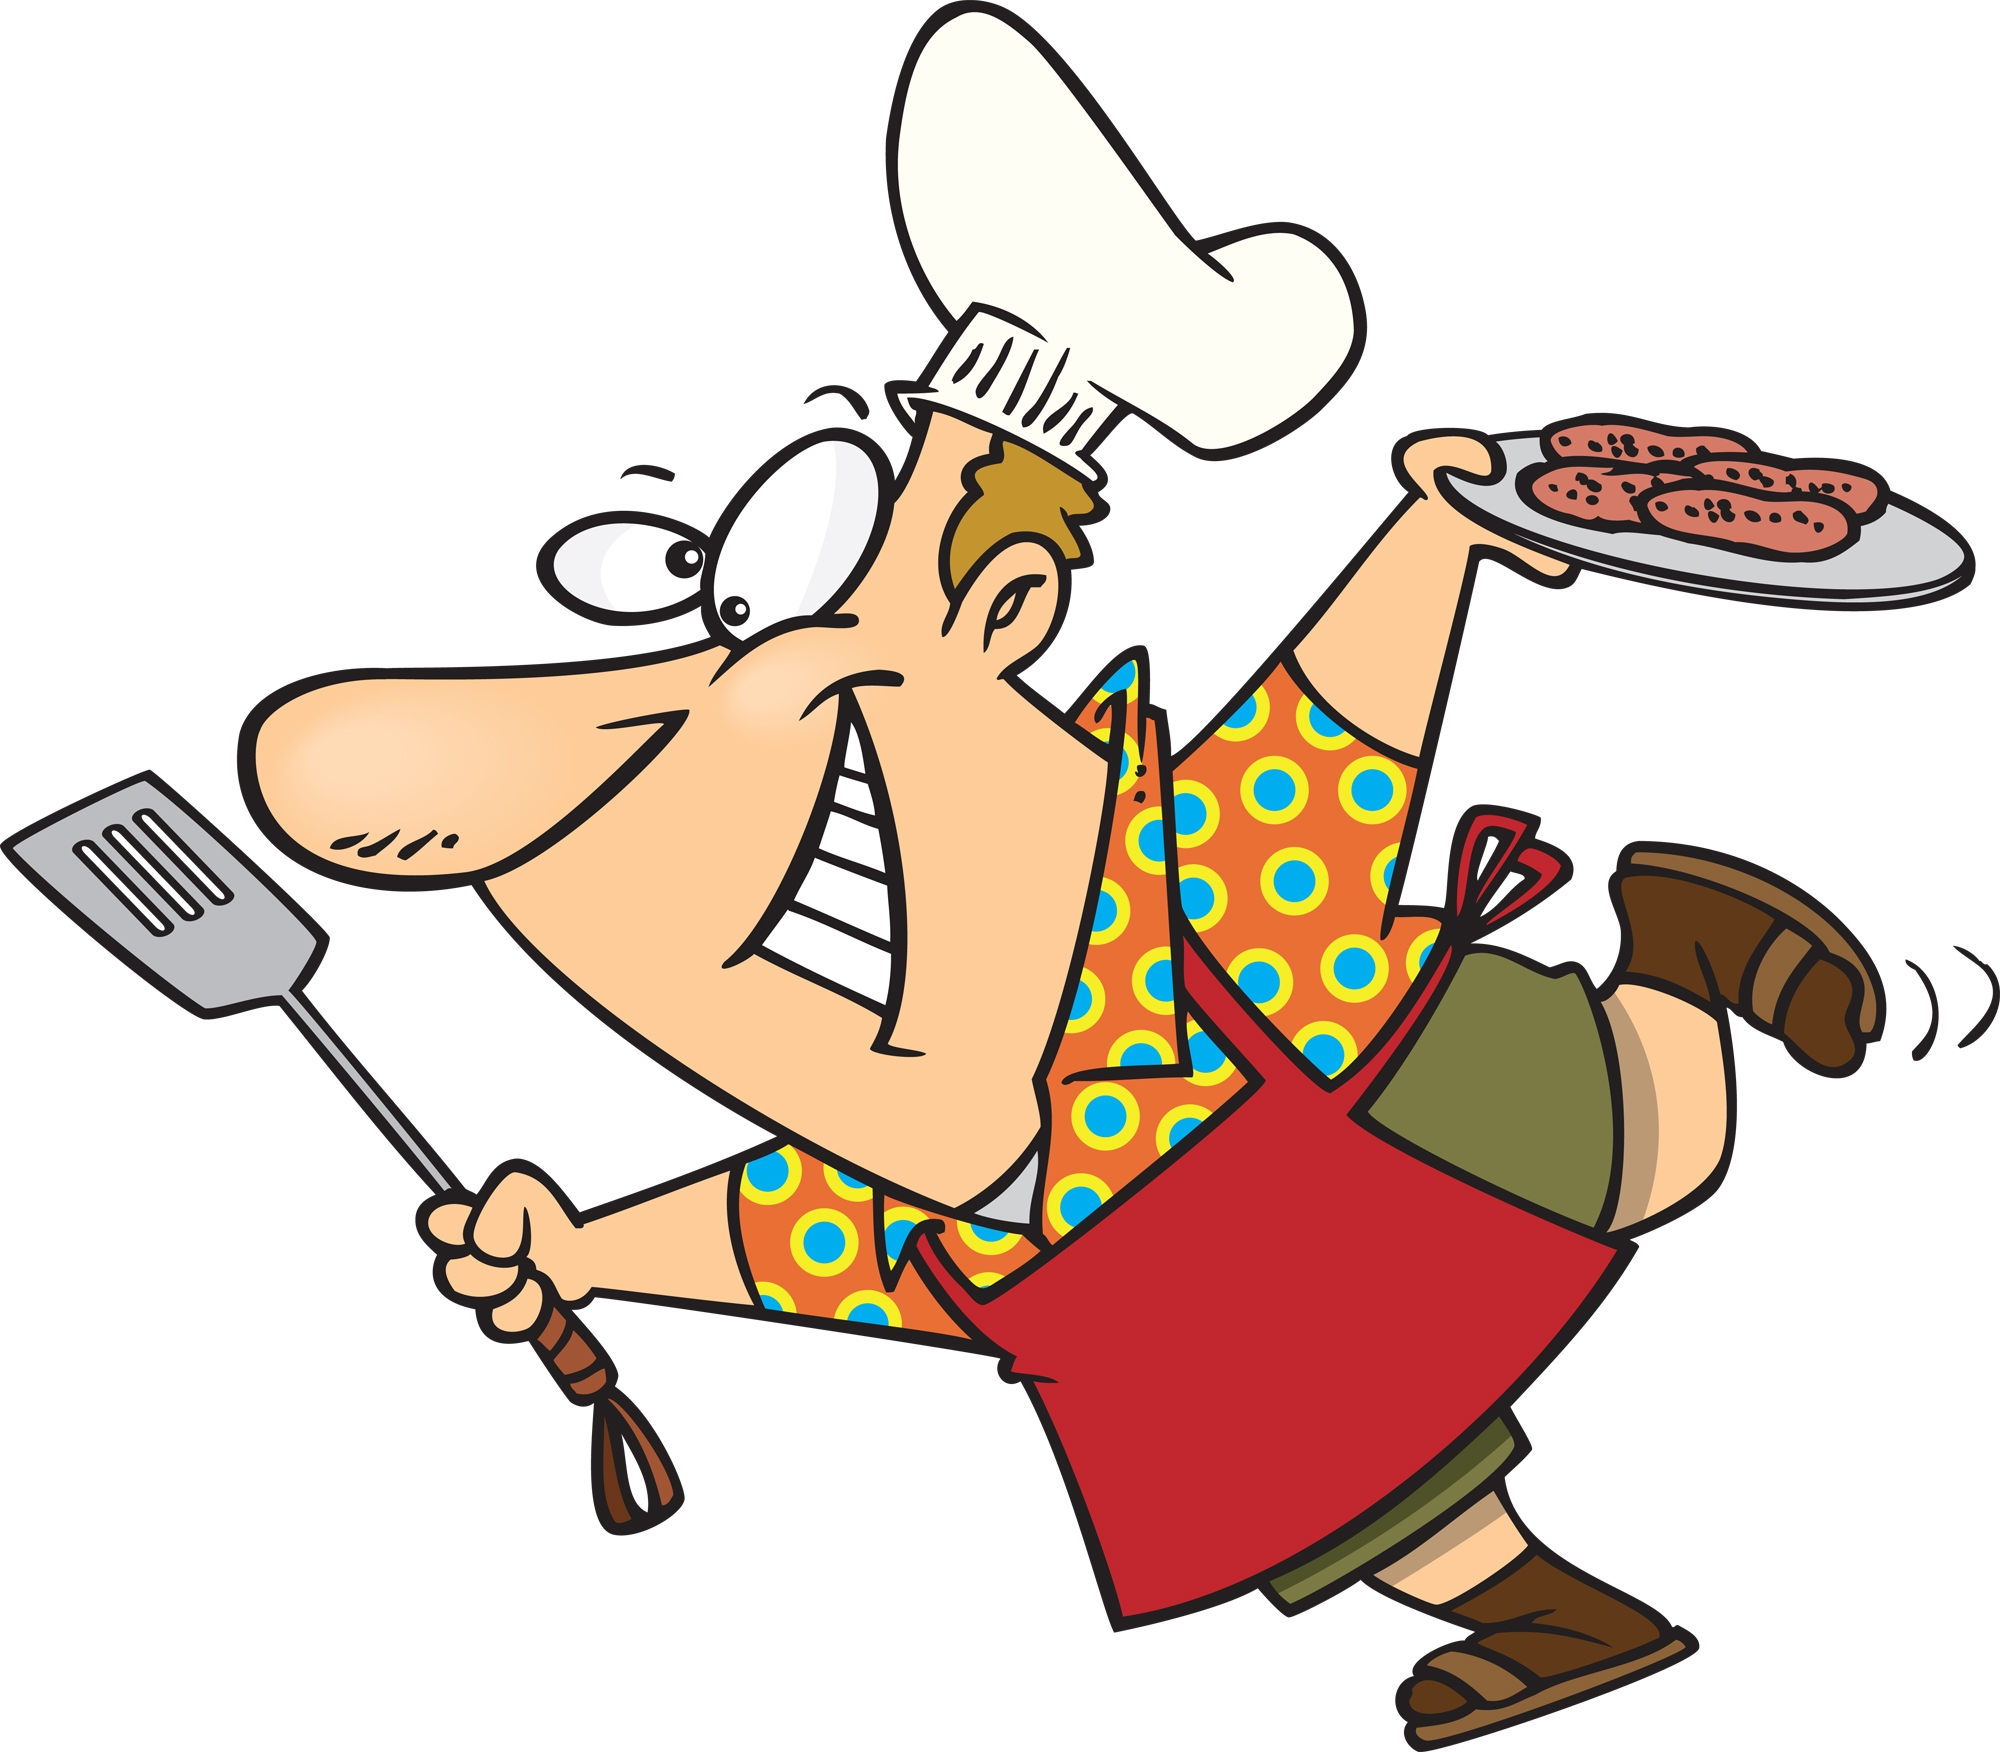 Barbecue clipart animated. Fresh bbq collection digital